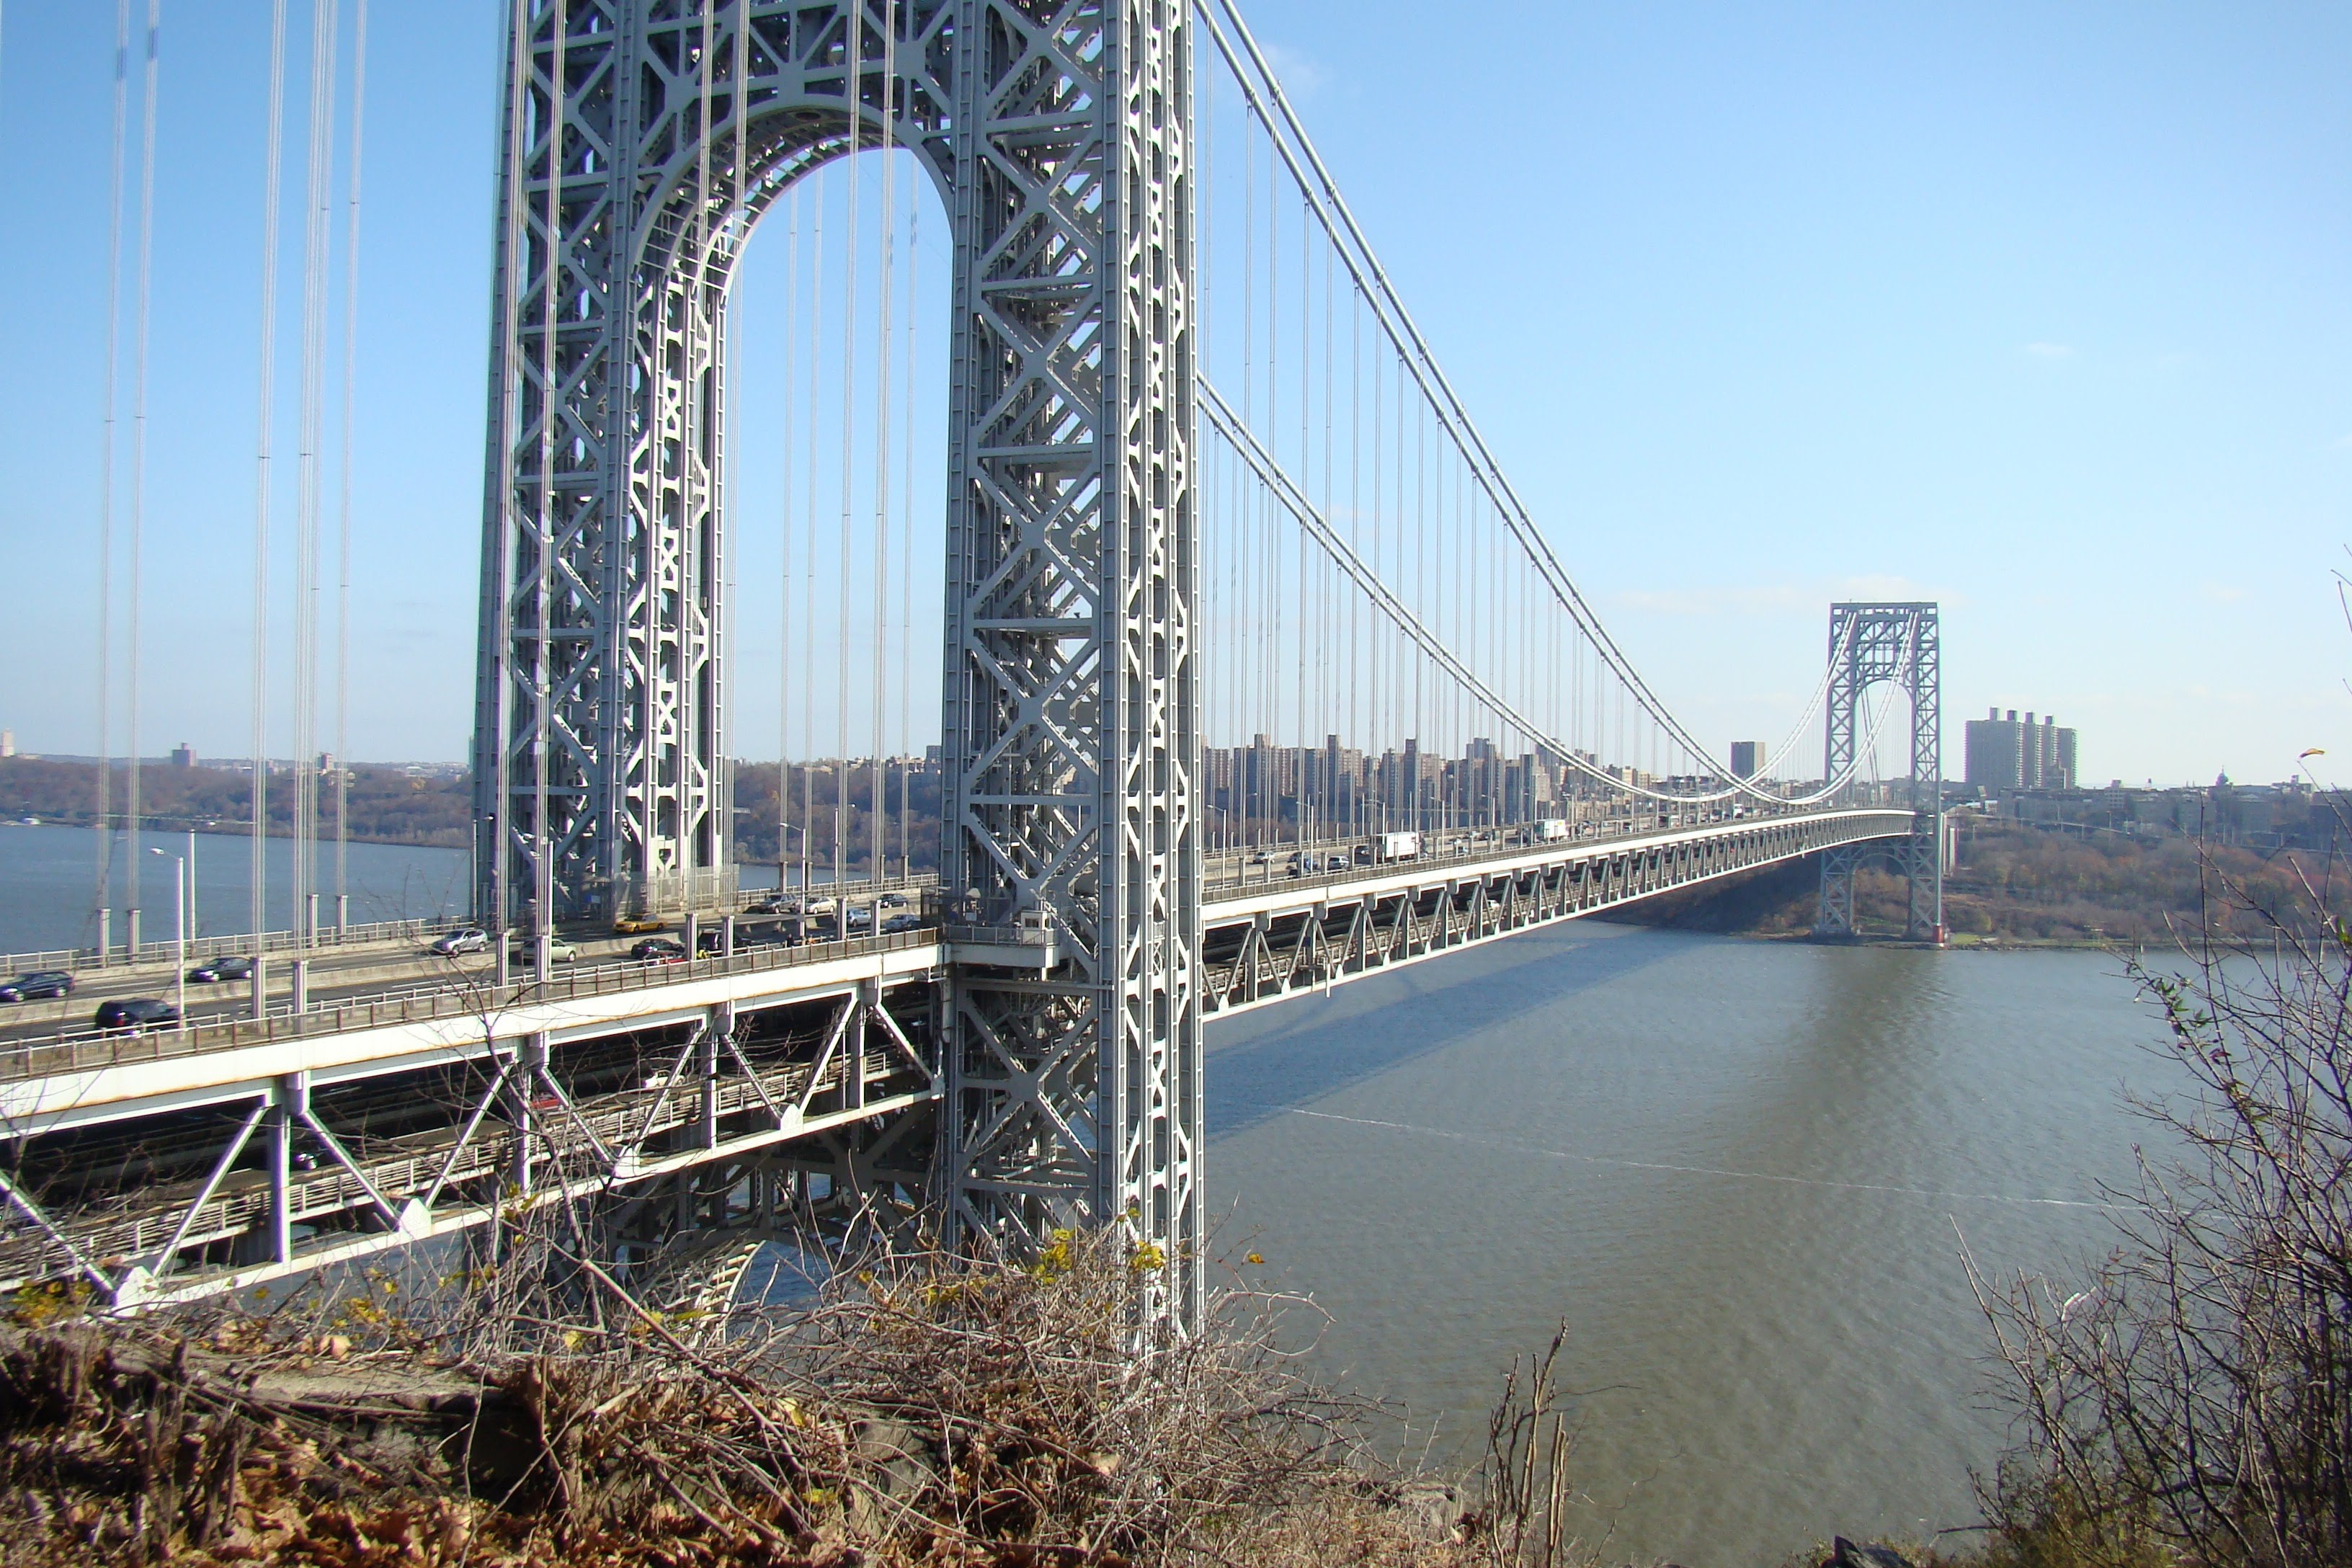 2020 Halloween Nyc Bridges The new year will bring toll and fare hikes for NY NJ bridges and